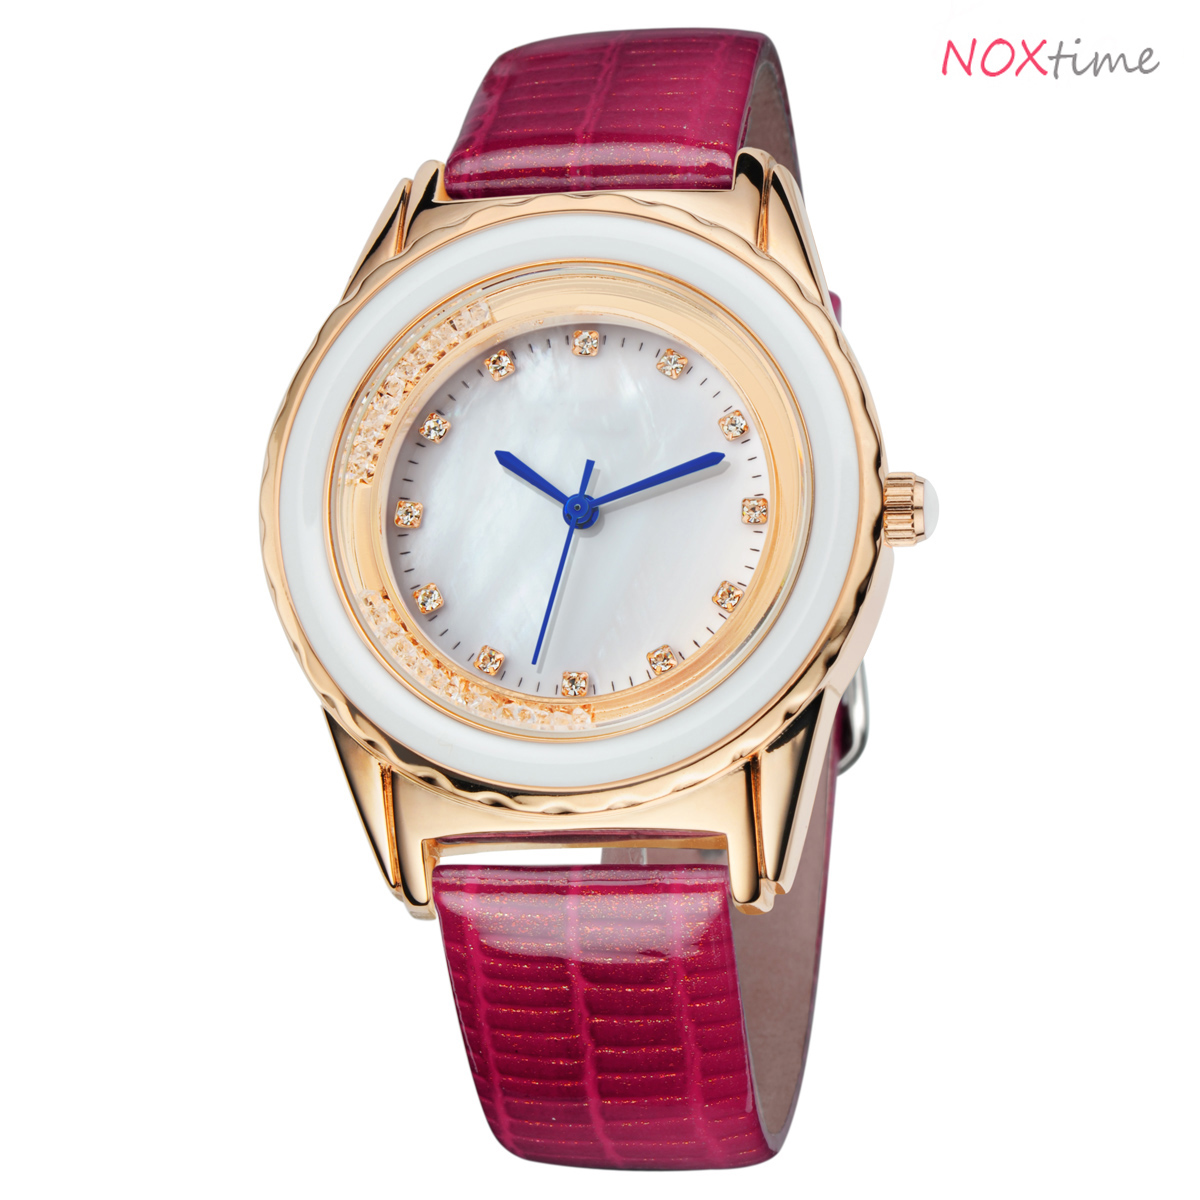 #2512 PU Leather Strap Shell Dial Watch Quartz Wrist Watch Best Birthday Gift for Women( rose red)